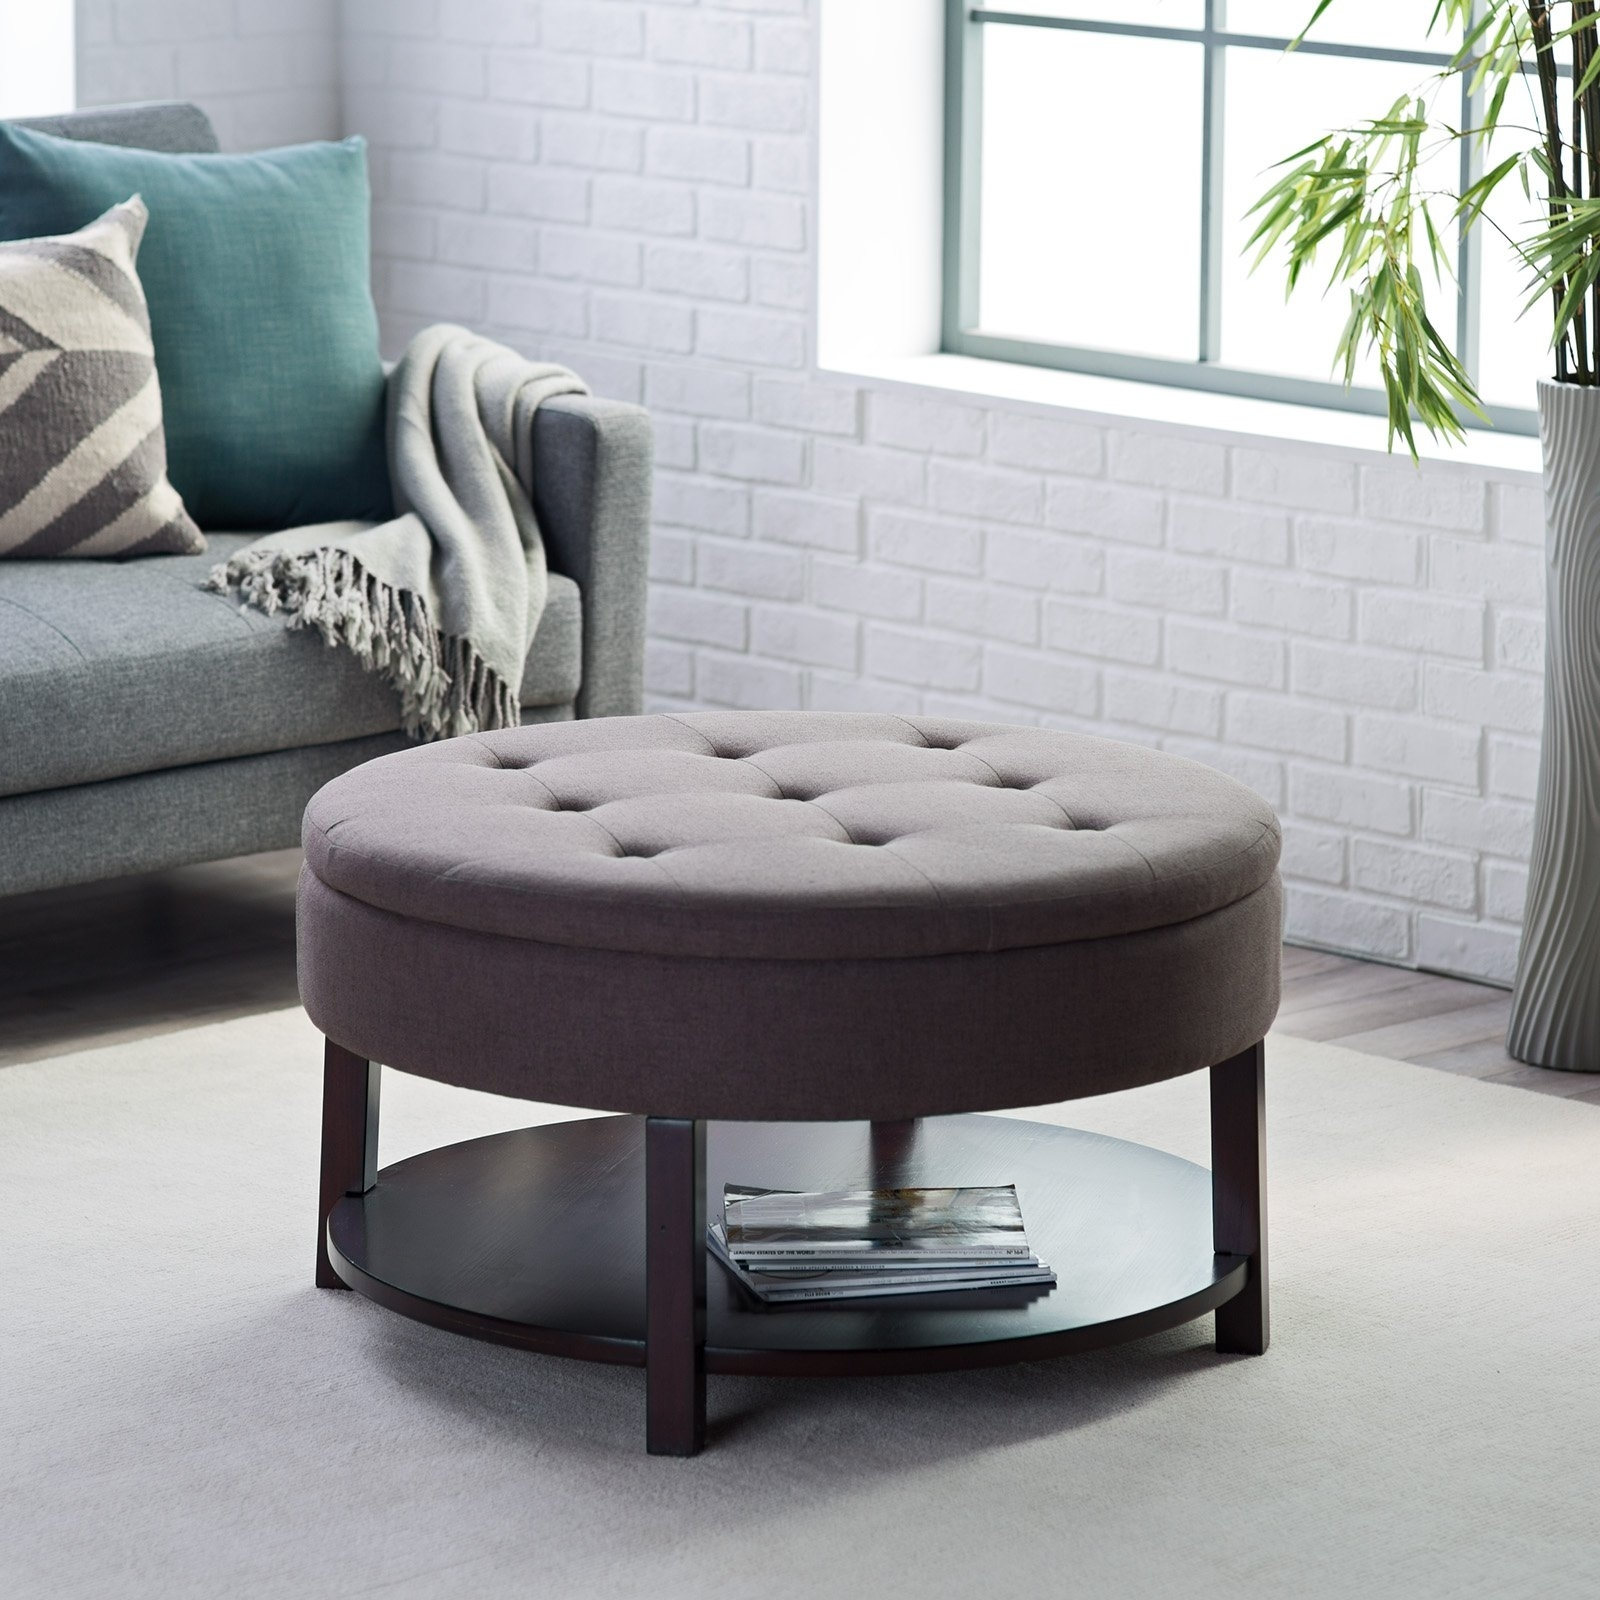 Coffee Table. Ottoman Coffee Table: Belham Living Dalton Coffee within Elba Ottoman-Coffee Tables (Image 8 of 30)